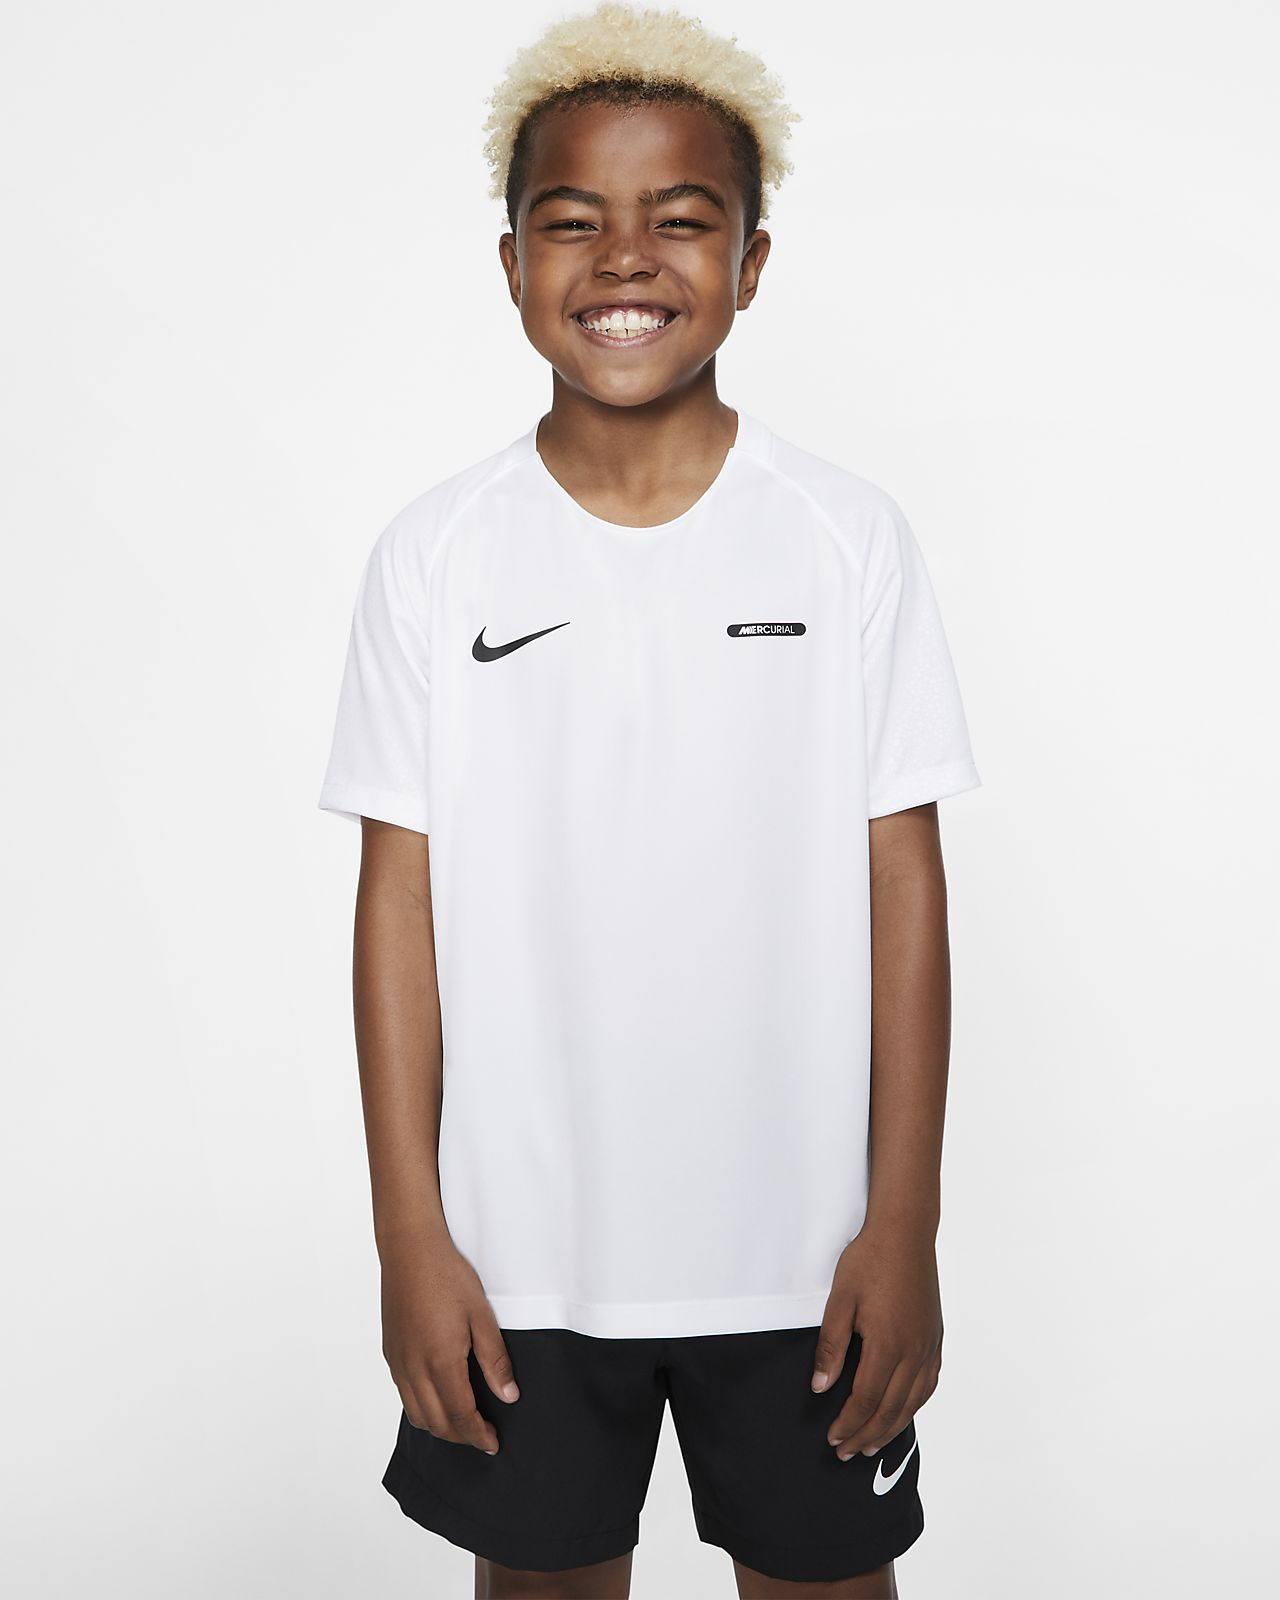 Nike Dri-FIT Mercurial Older Kids' Short-Sleeve Football Top